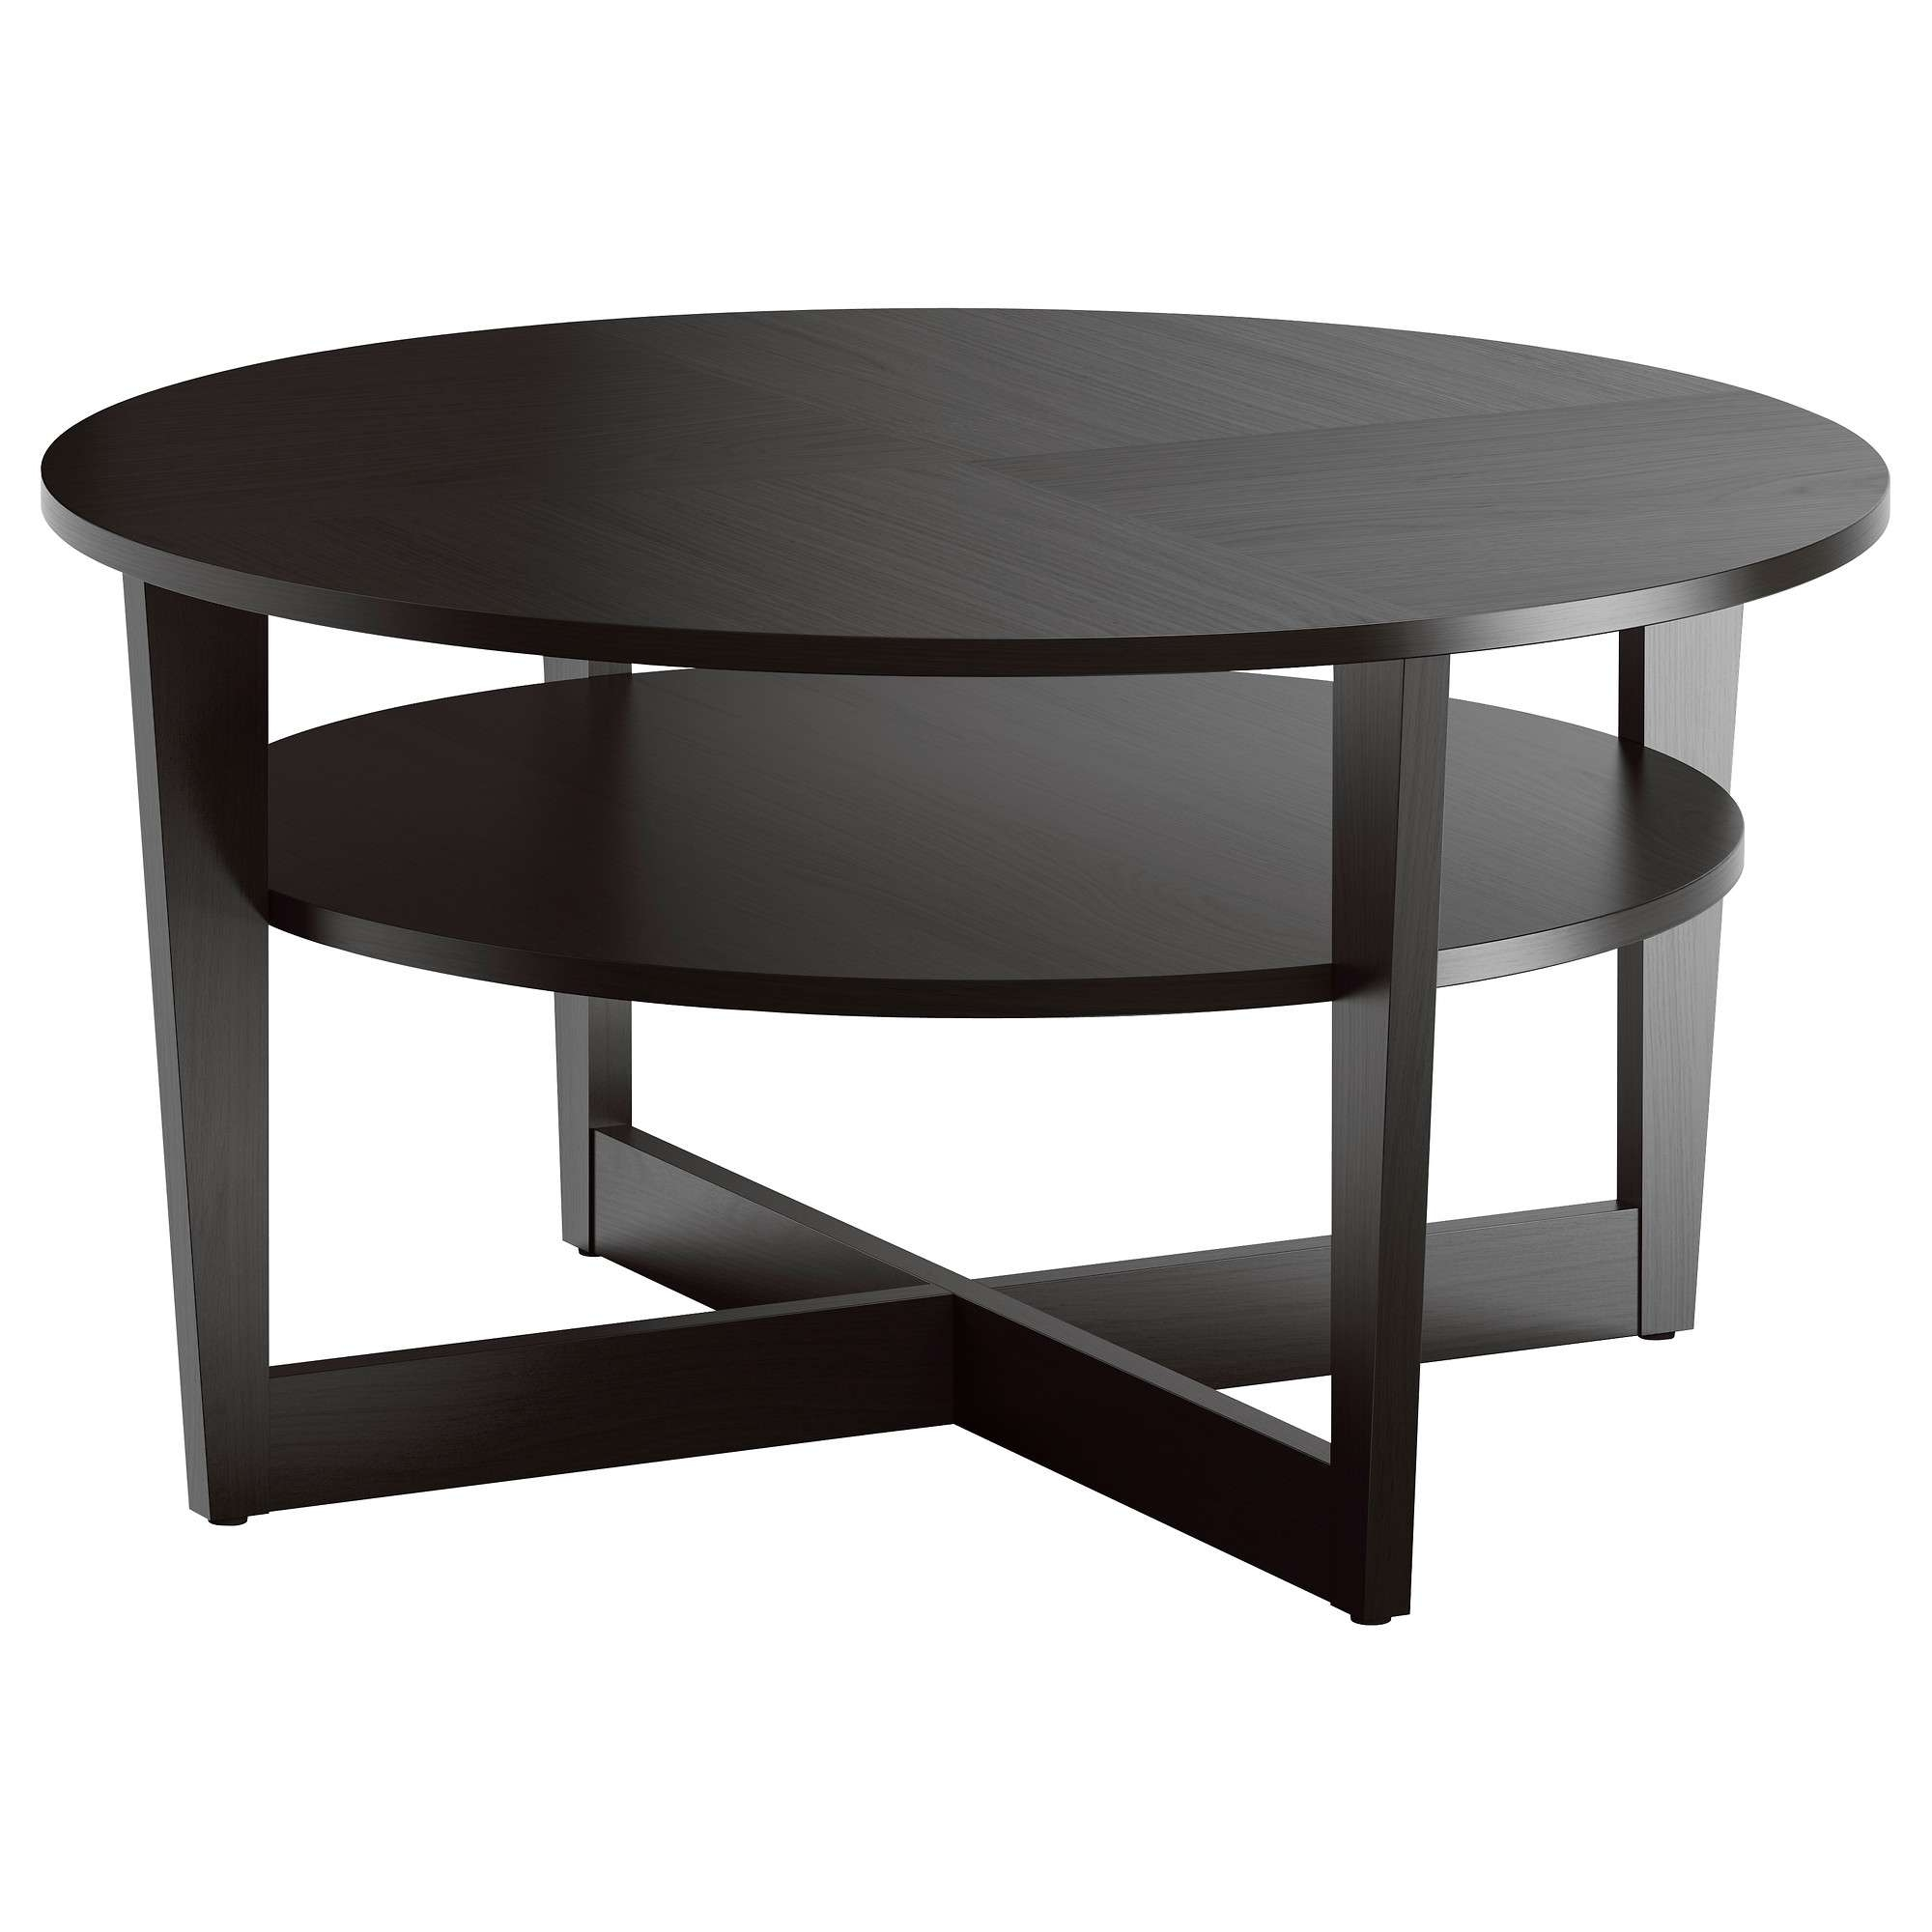 Round Coffee Table Ikea In Trends — Home Design Ideas Intended For Favorite Black Circle Coffee Tables (View 8 of 20)